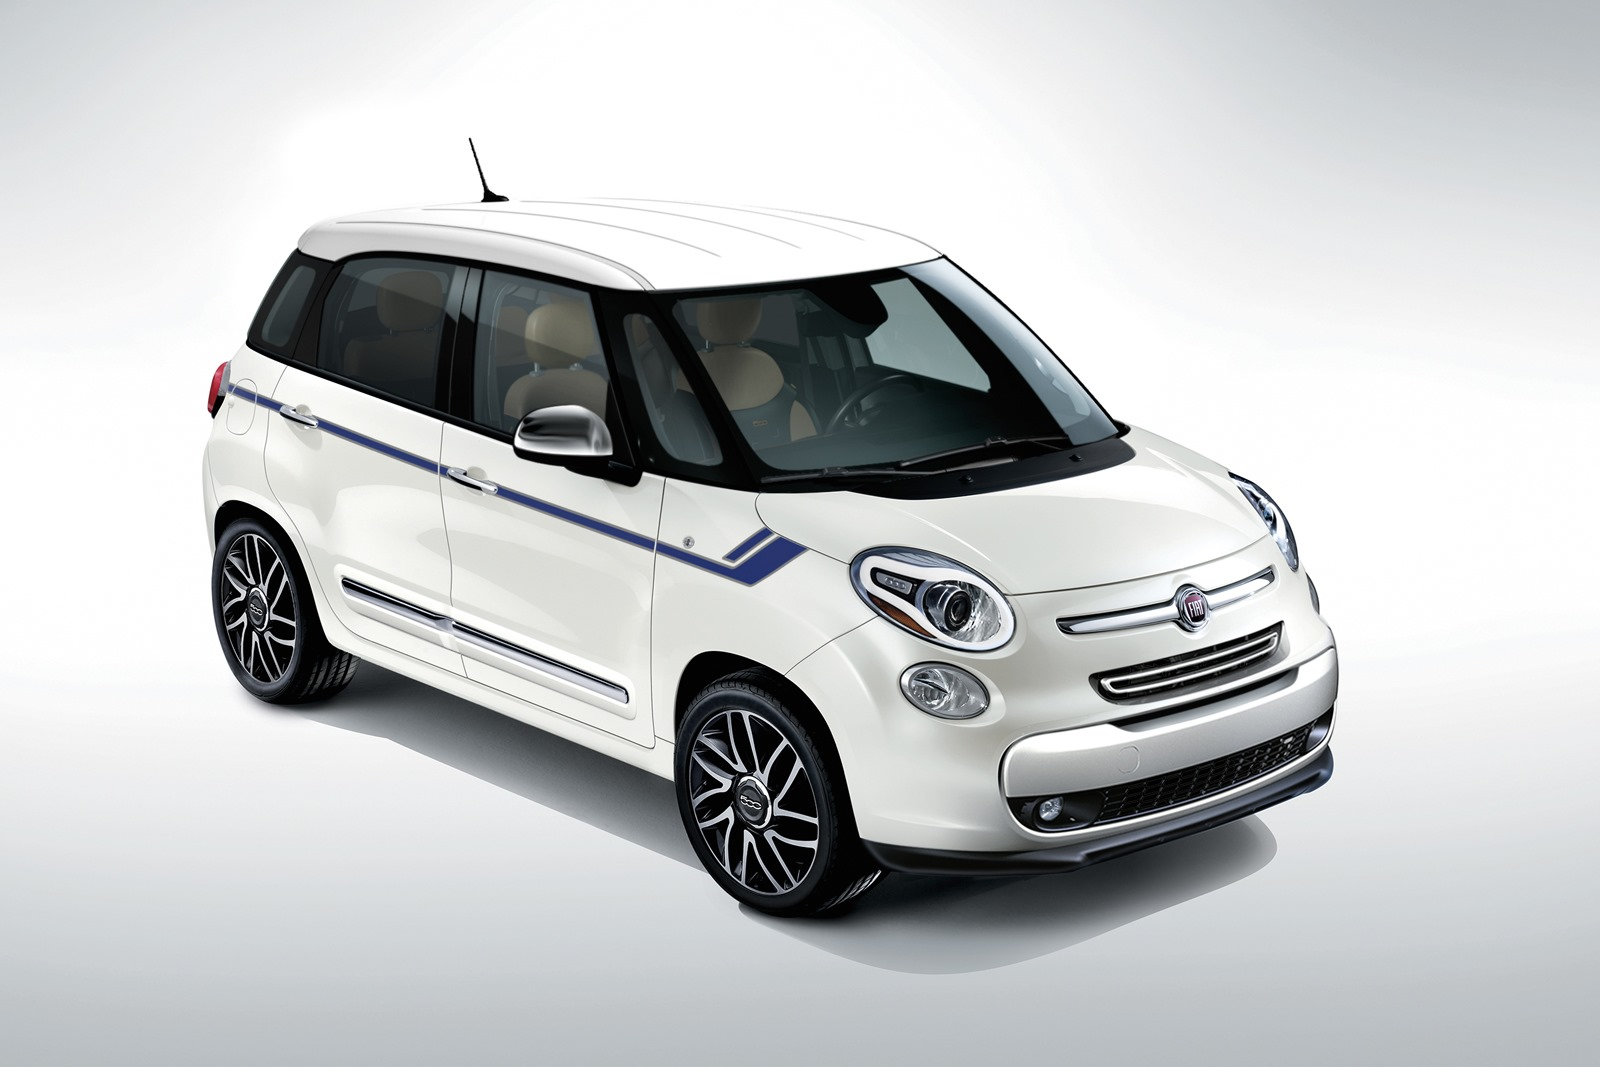 Fiat 500 Cabrio Convertible also Tinta Hp Hiper Prata 500ml in addition 126265 Forge Intercooler 650 Shipped further Mopar Launches 100 Accessories For The All New Fiat 500l 65603 additionally Fiat 500c la dolce vita by fenice milano  2010. on fiat 500 fender